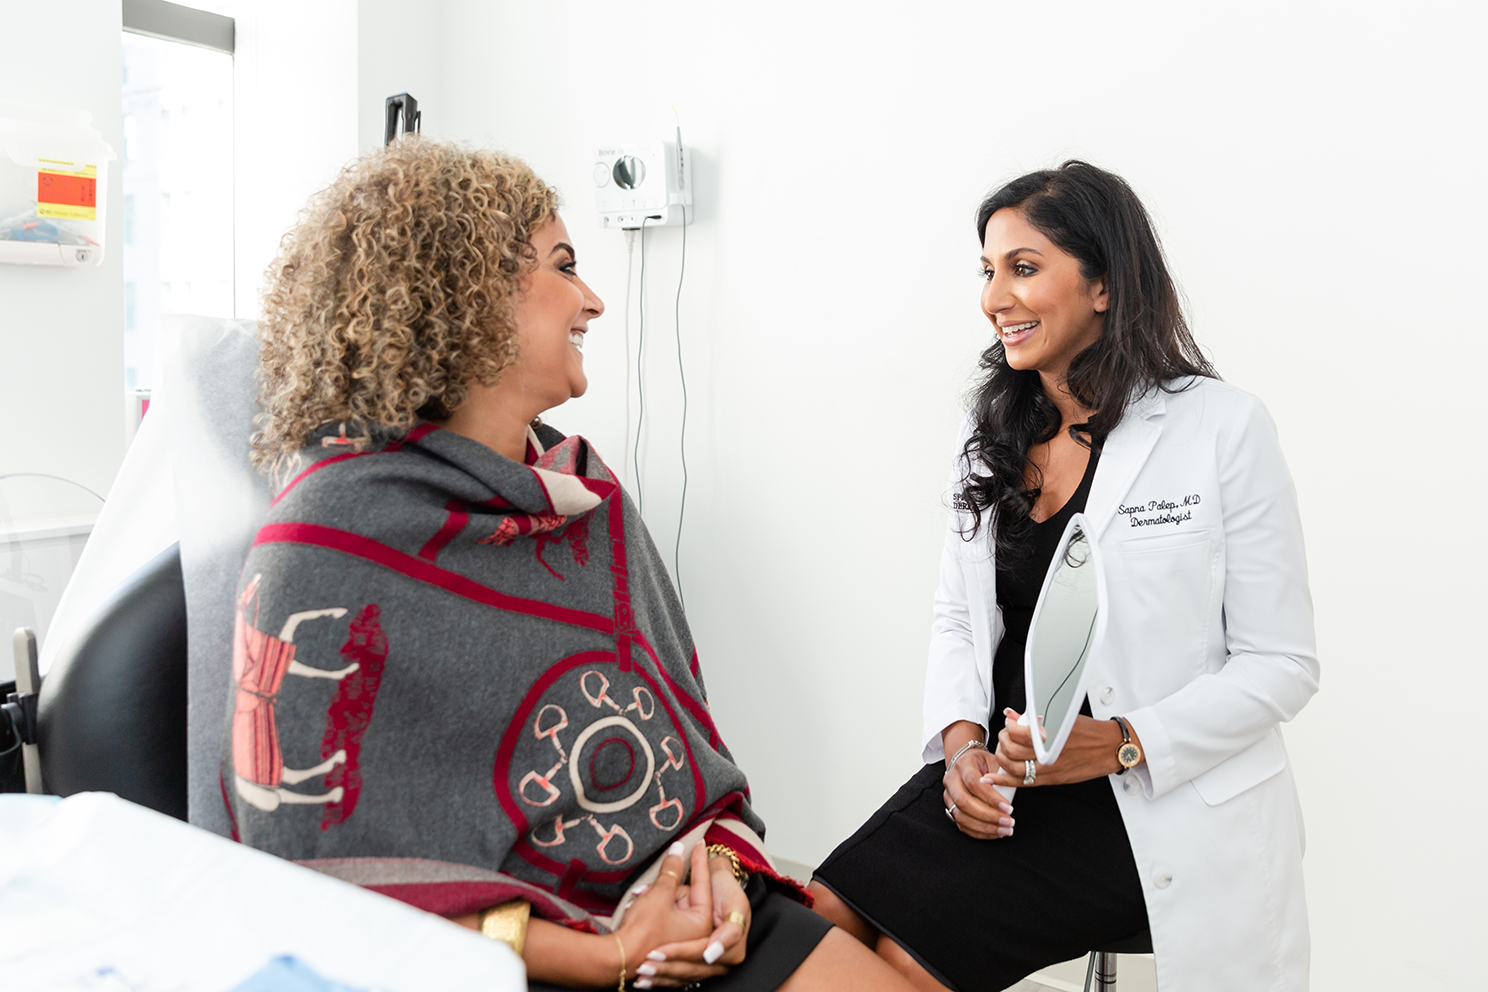 Excimer laser treatment consultation in New York City